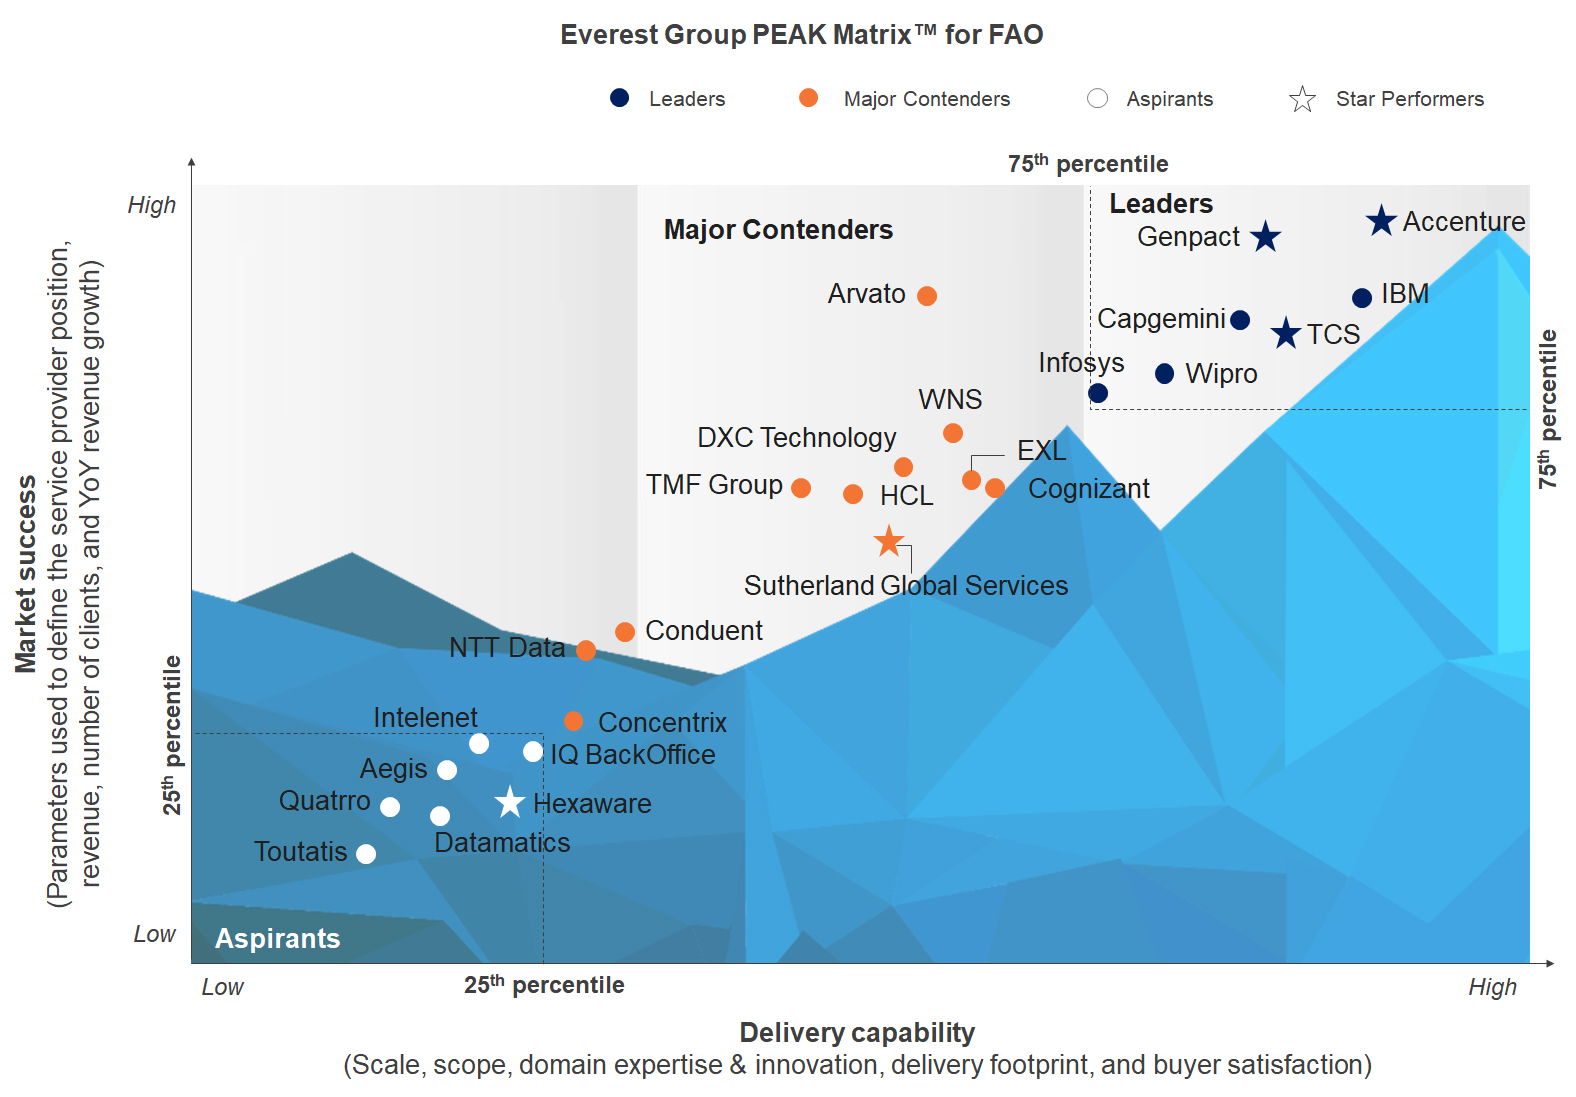 Everest Group PEAK Matrix for FAO